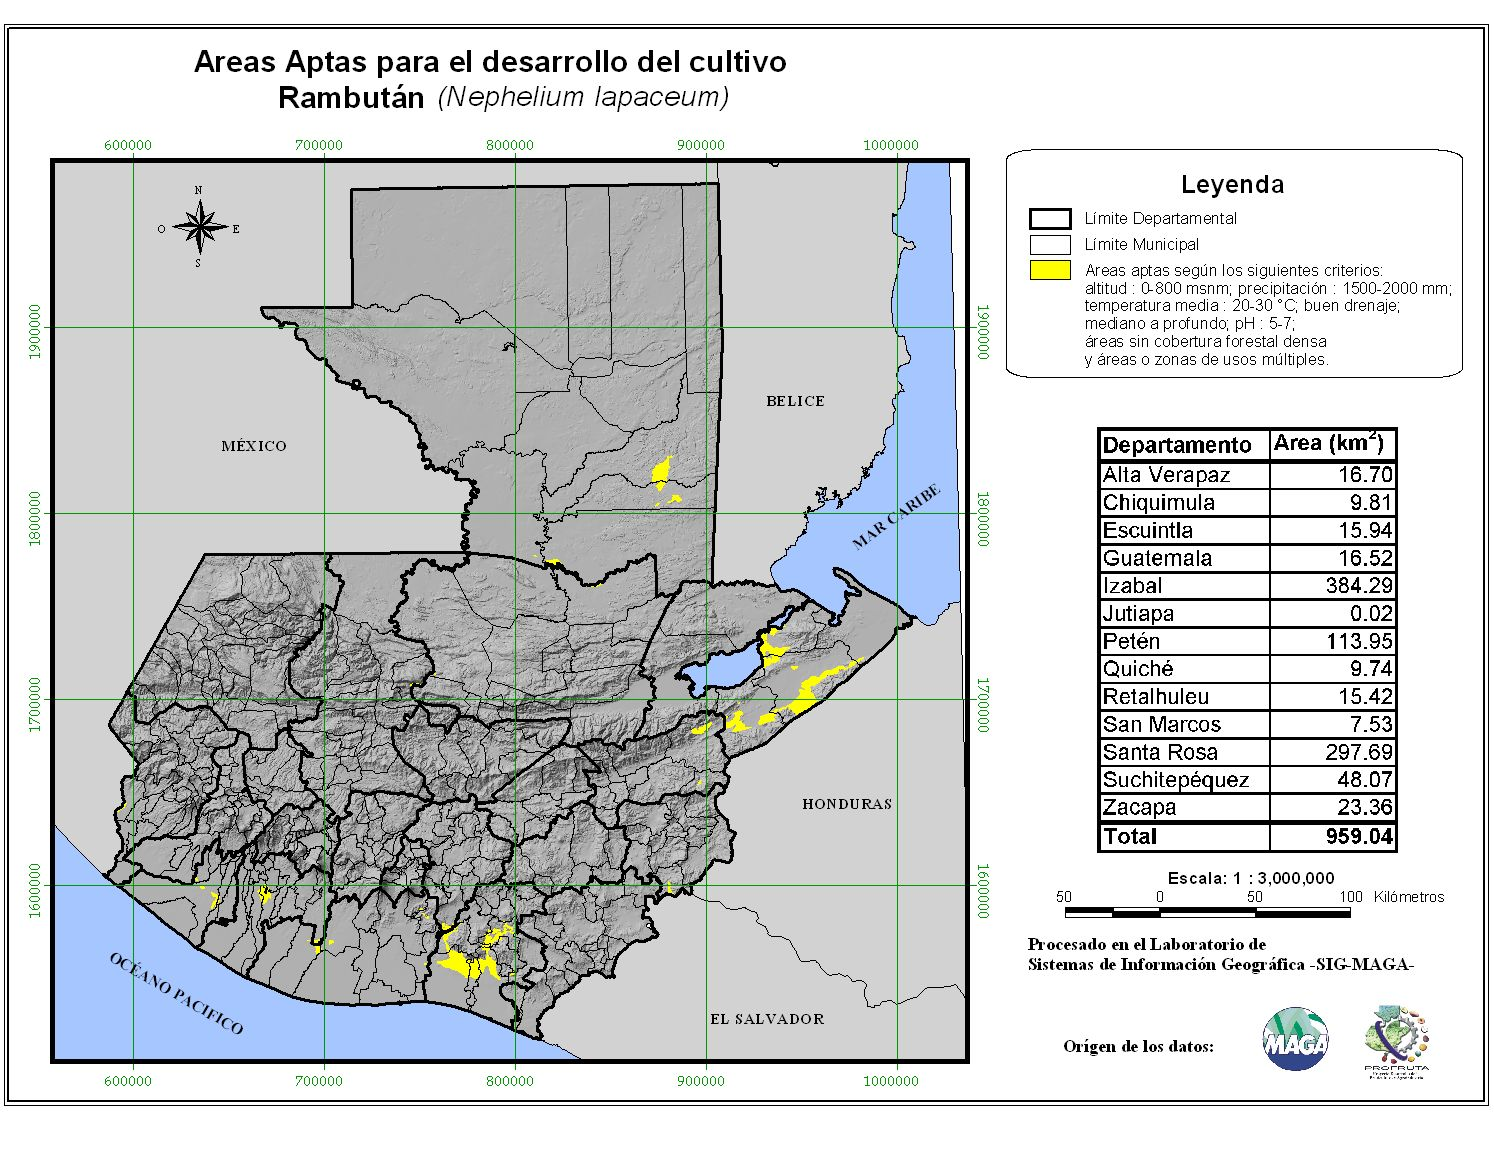 Areas suitable for growing Rambutan in Guatemala